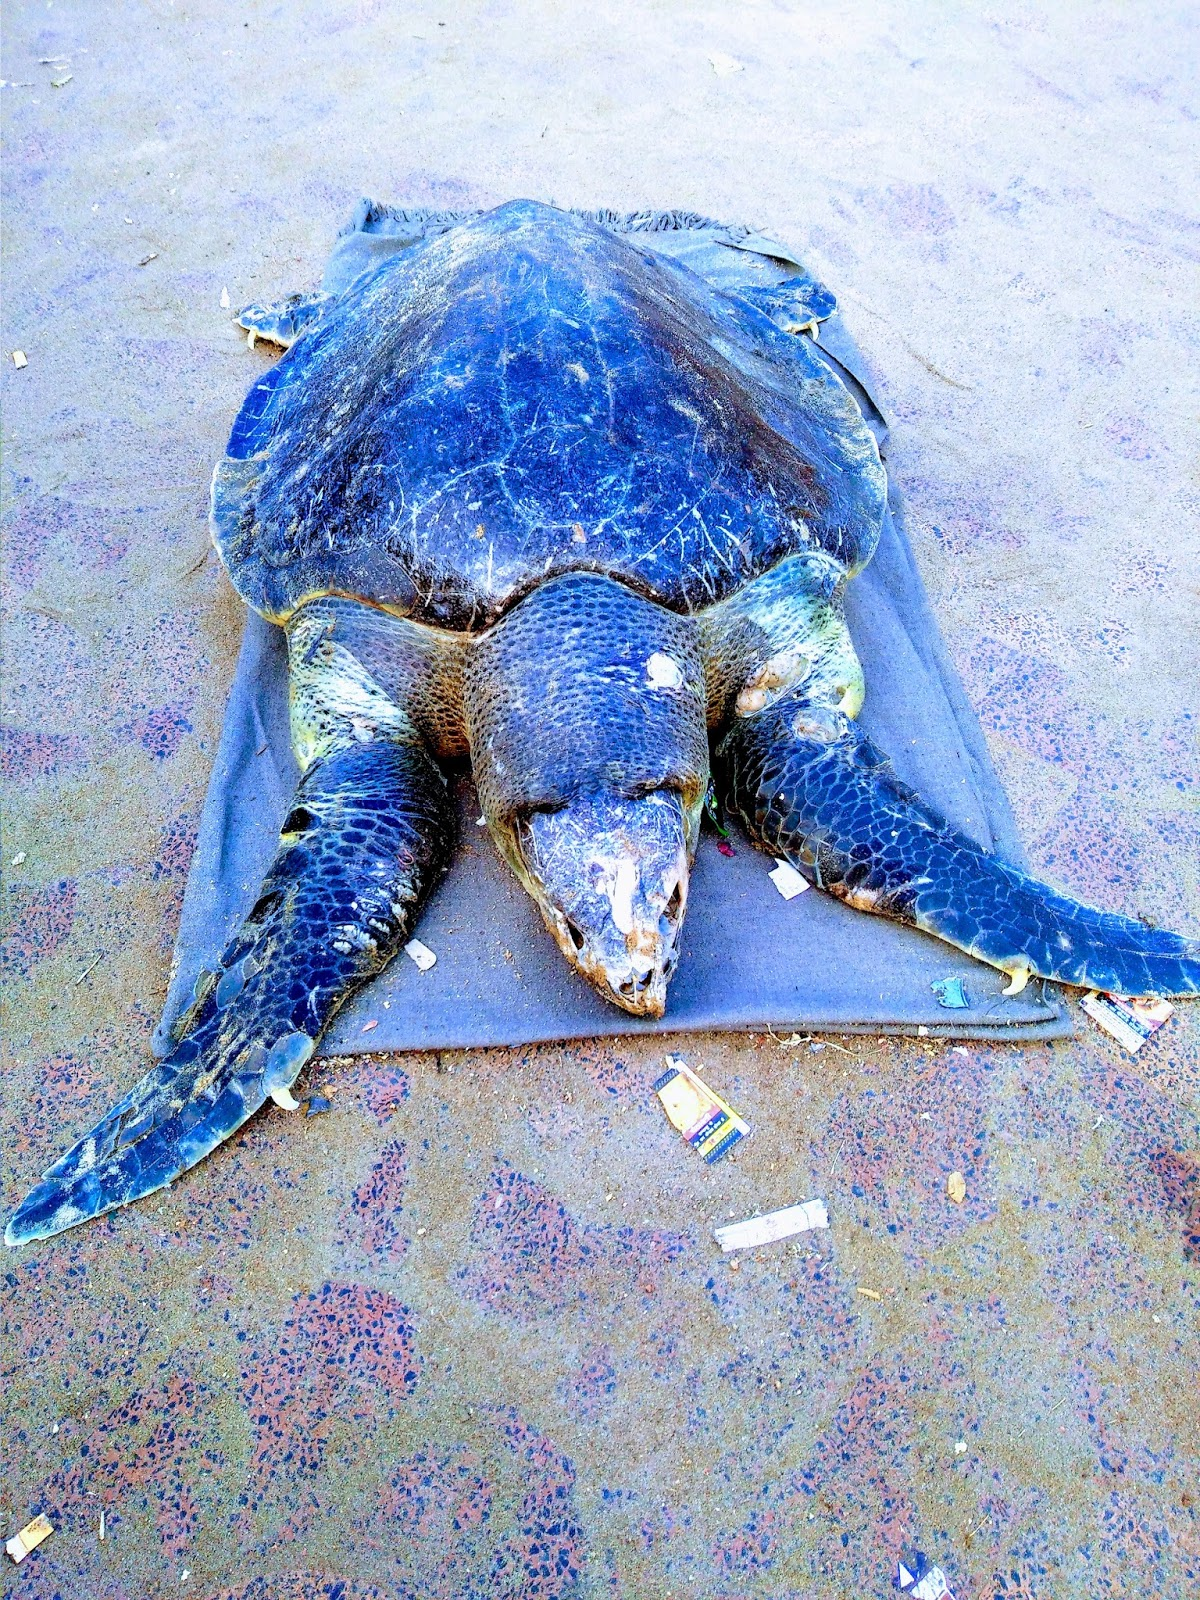 olive ridley at Puri sea beach